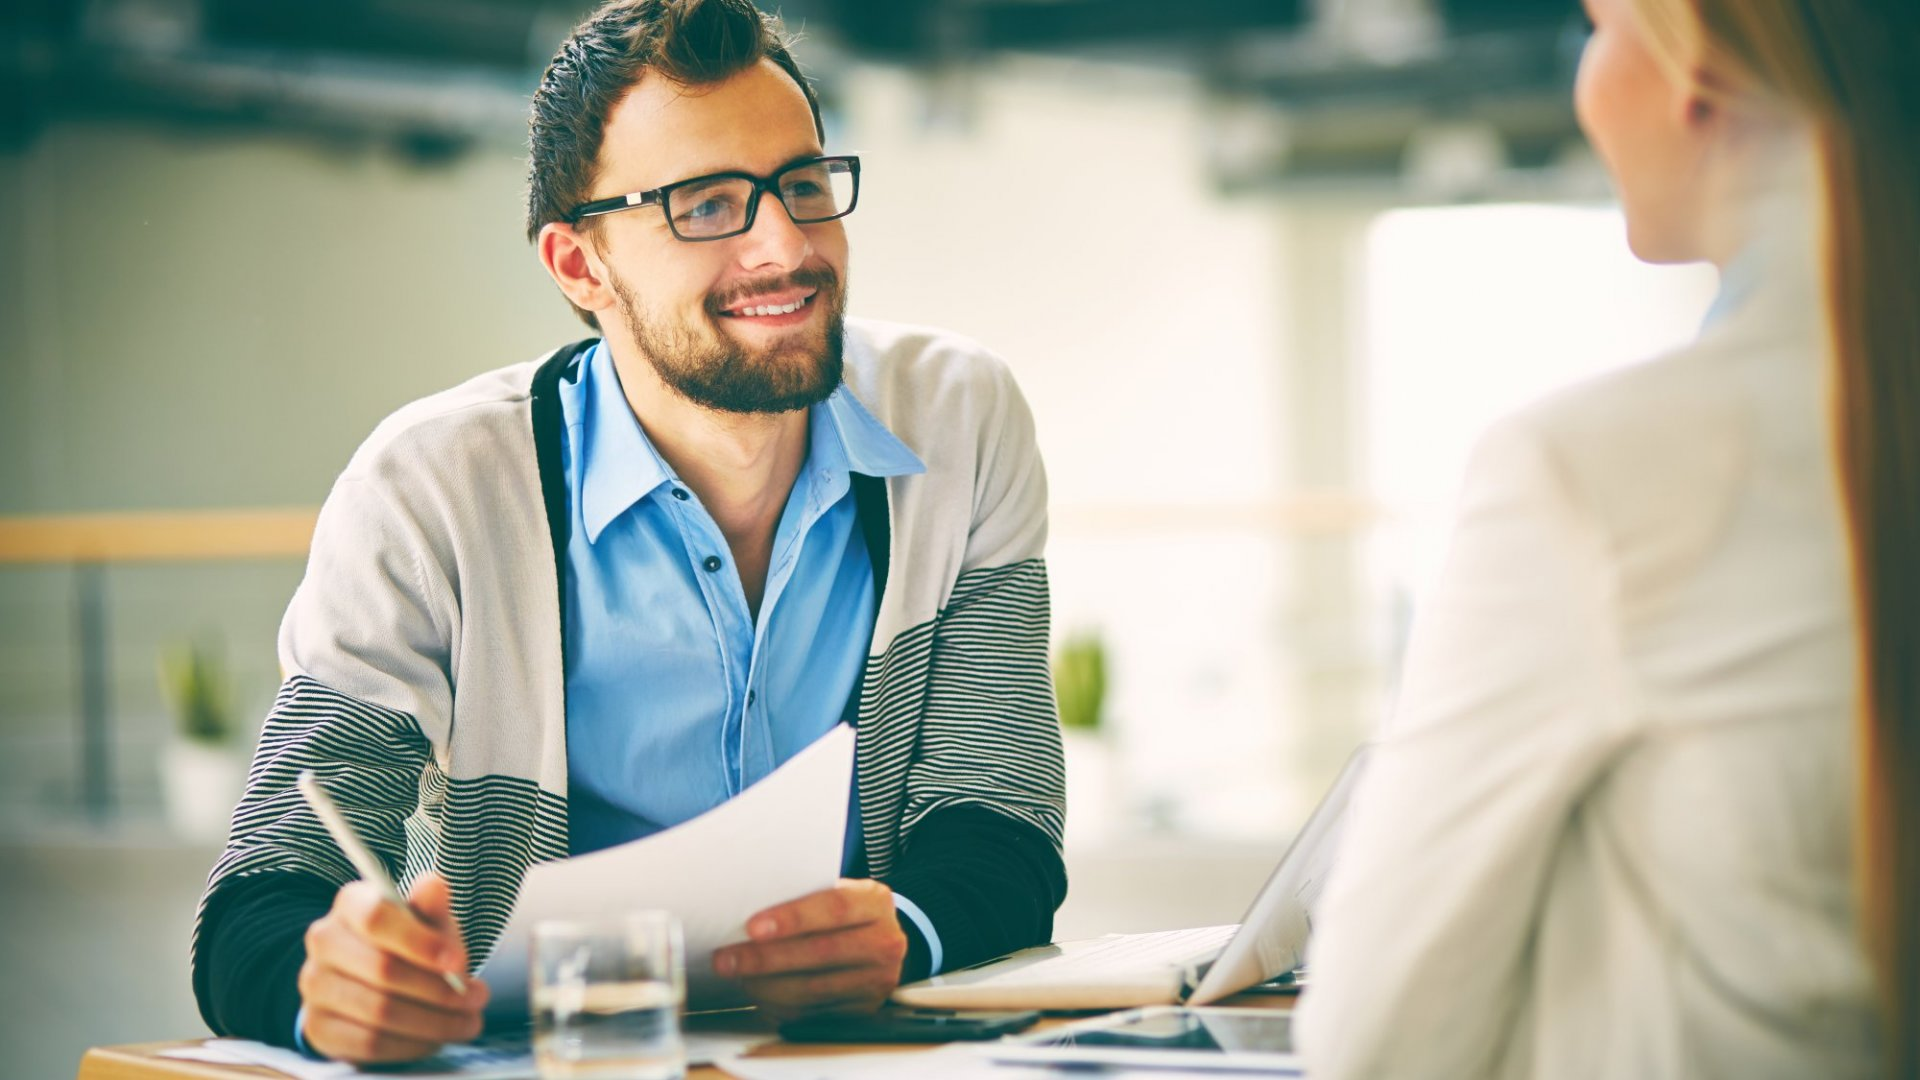 Looking to Hire Good People? First, Redesign the Job Interview